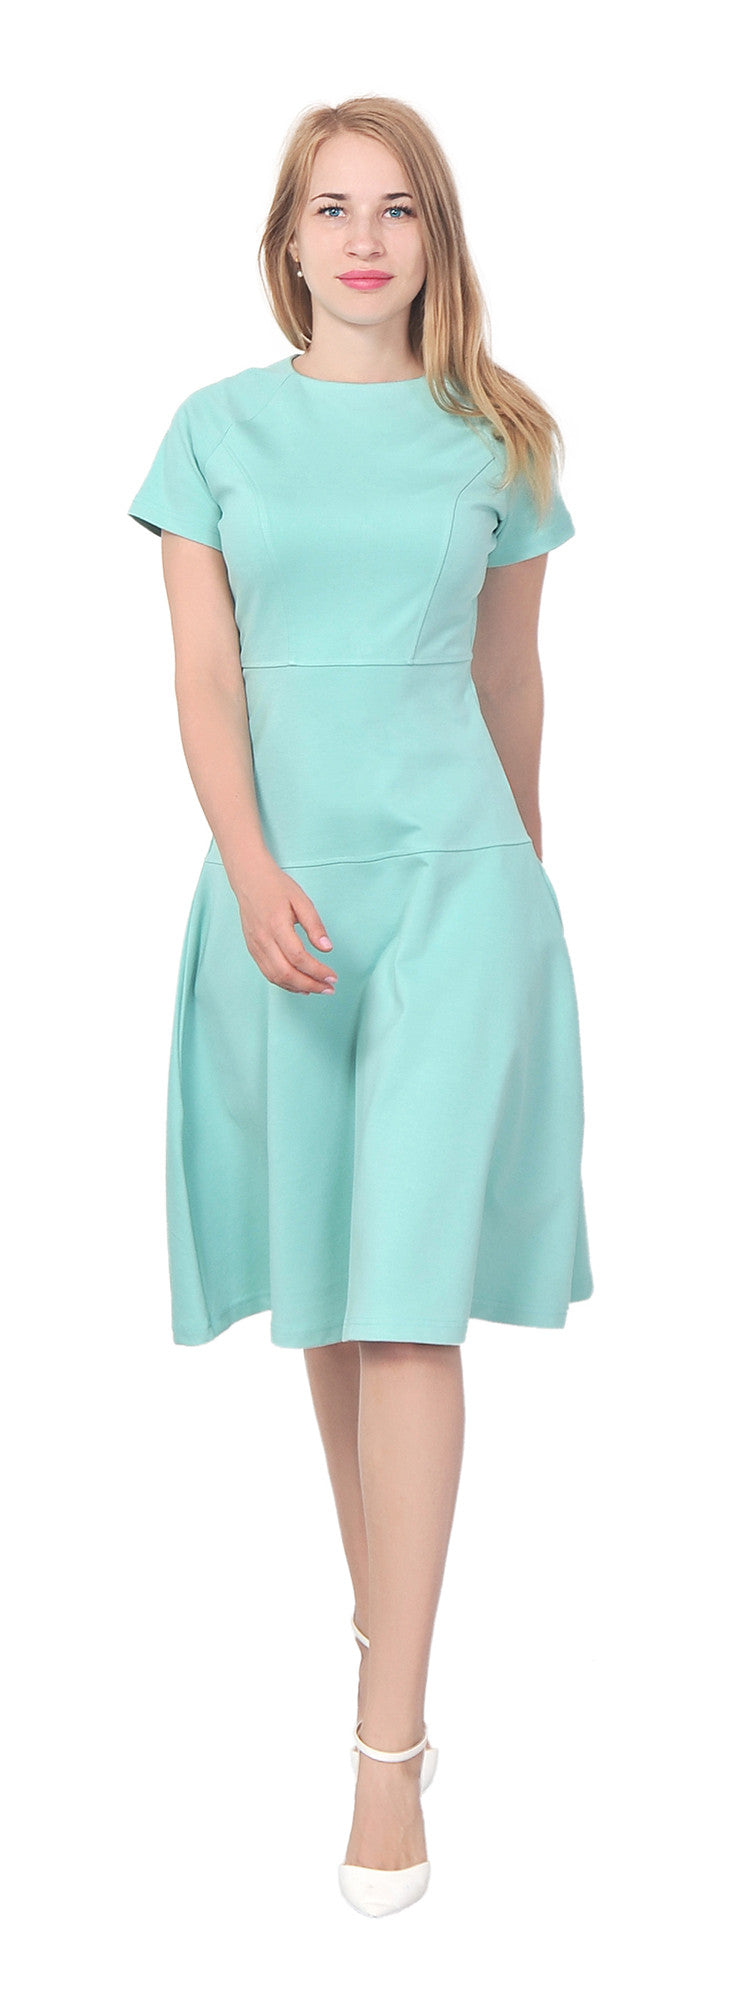 Womens Modest Short Sleeve A line Midi dress